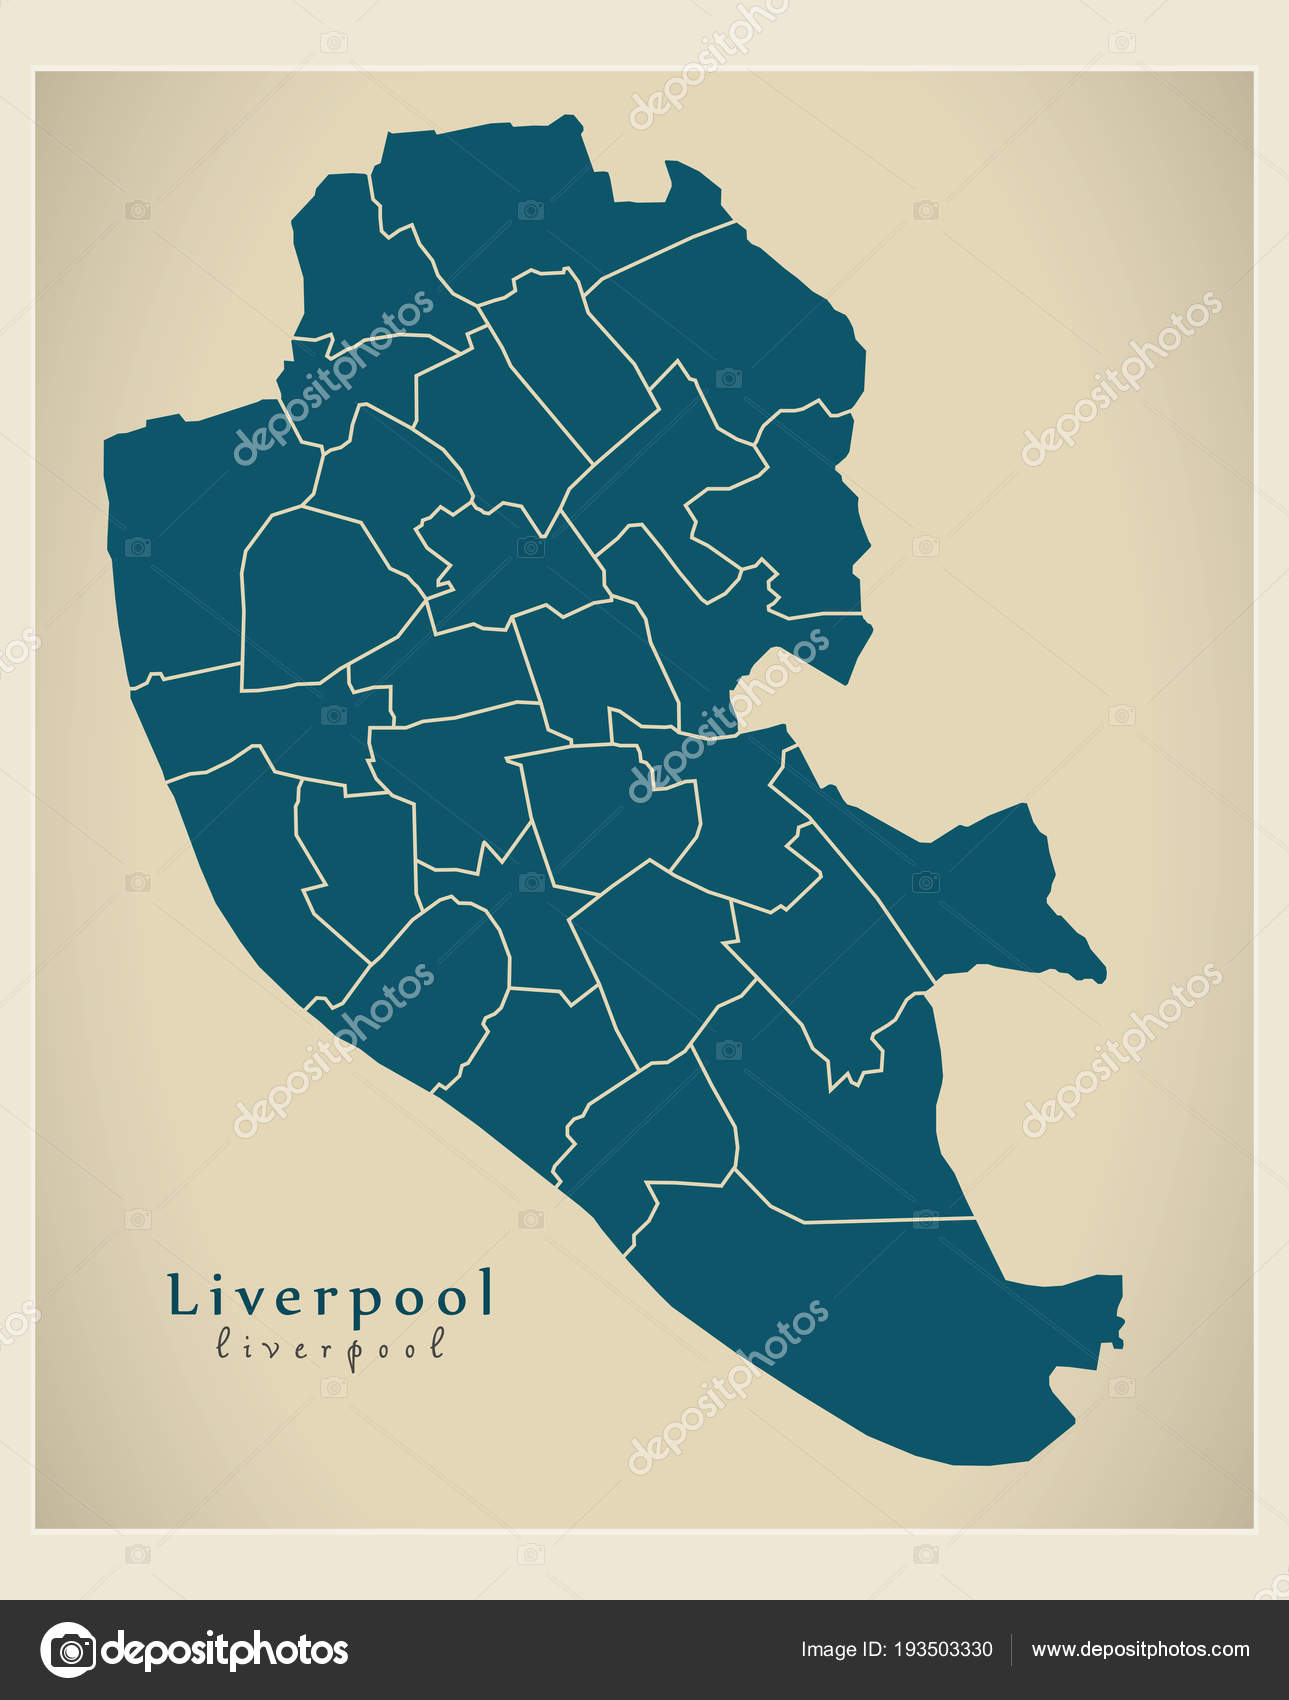 Map Of England Liverpool.Modern City Map Liverpool City Of England With Wards Uk Stock